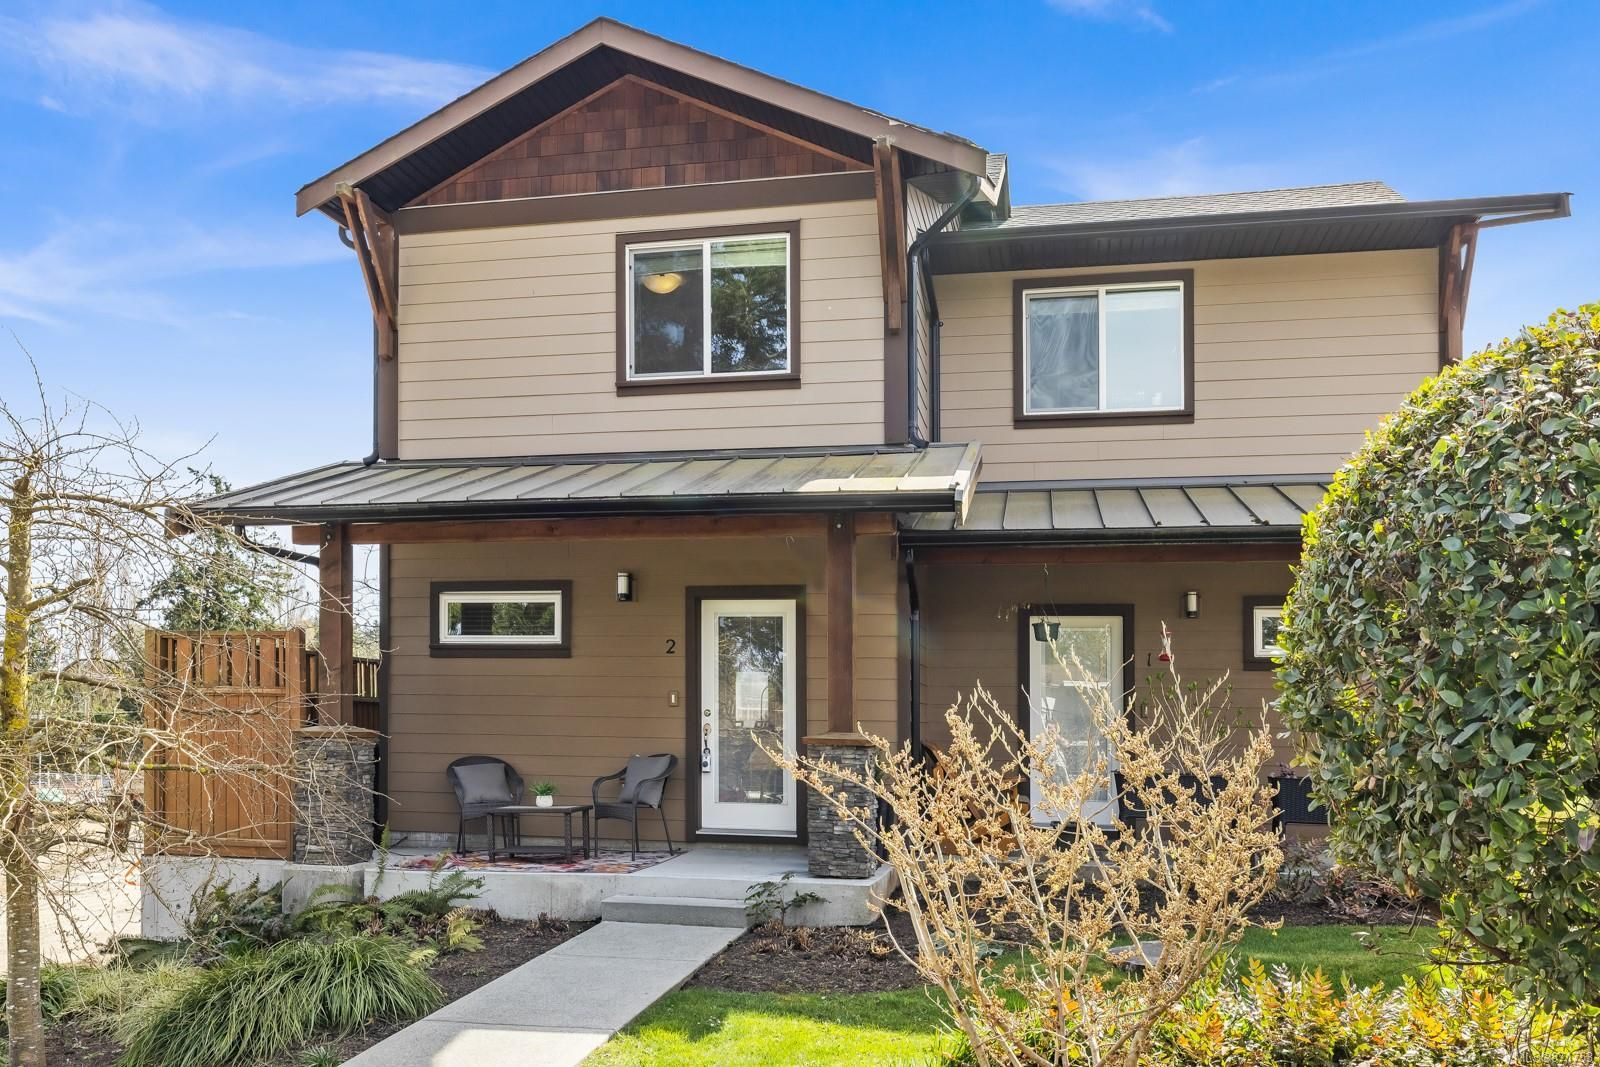 Main Photo: 2 1893 Prosser Rd in : CS Saanichton Row/Townhouse for sale (Central Saanich)  : MLS®# 871753